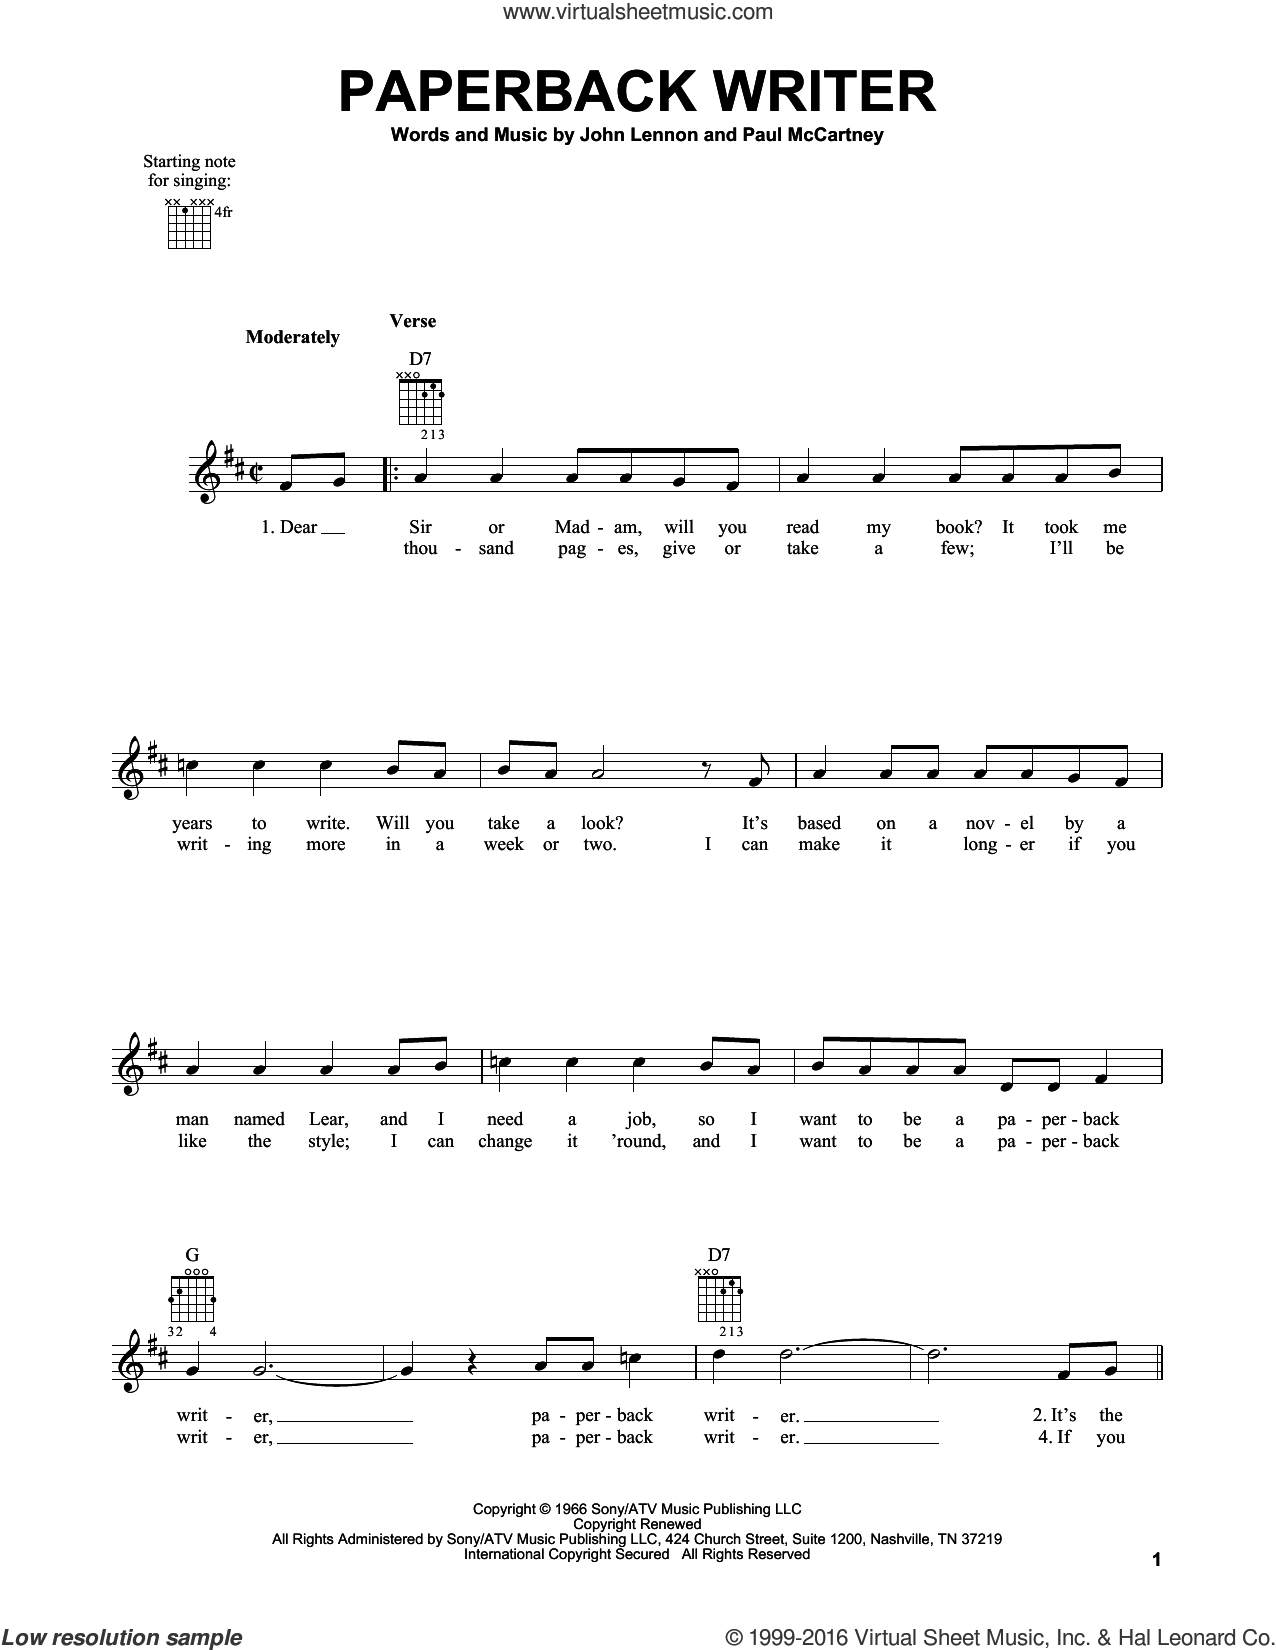 Paperback Writer sheet music for guitar solo (chords) by Paul McCartney